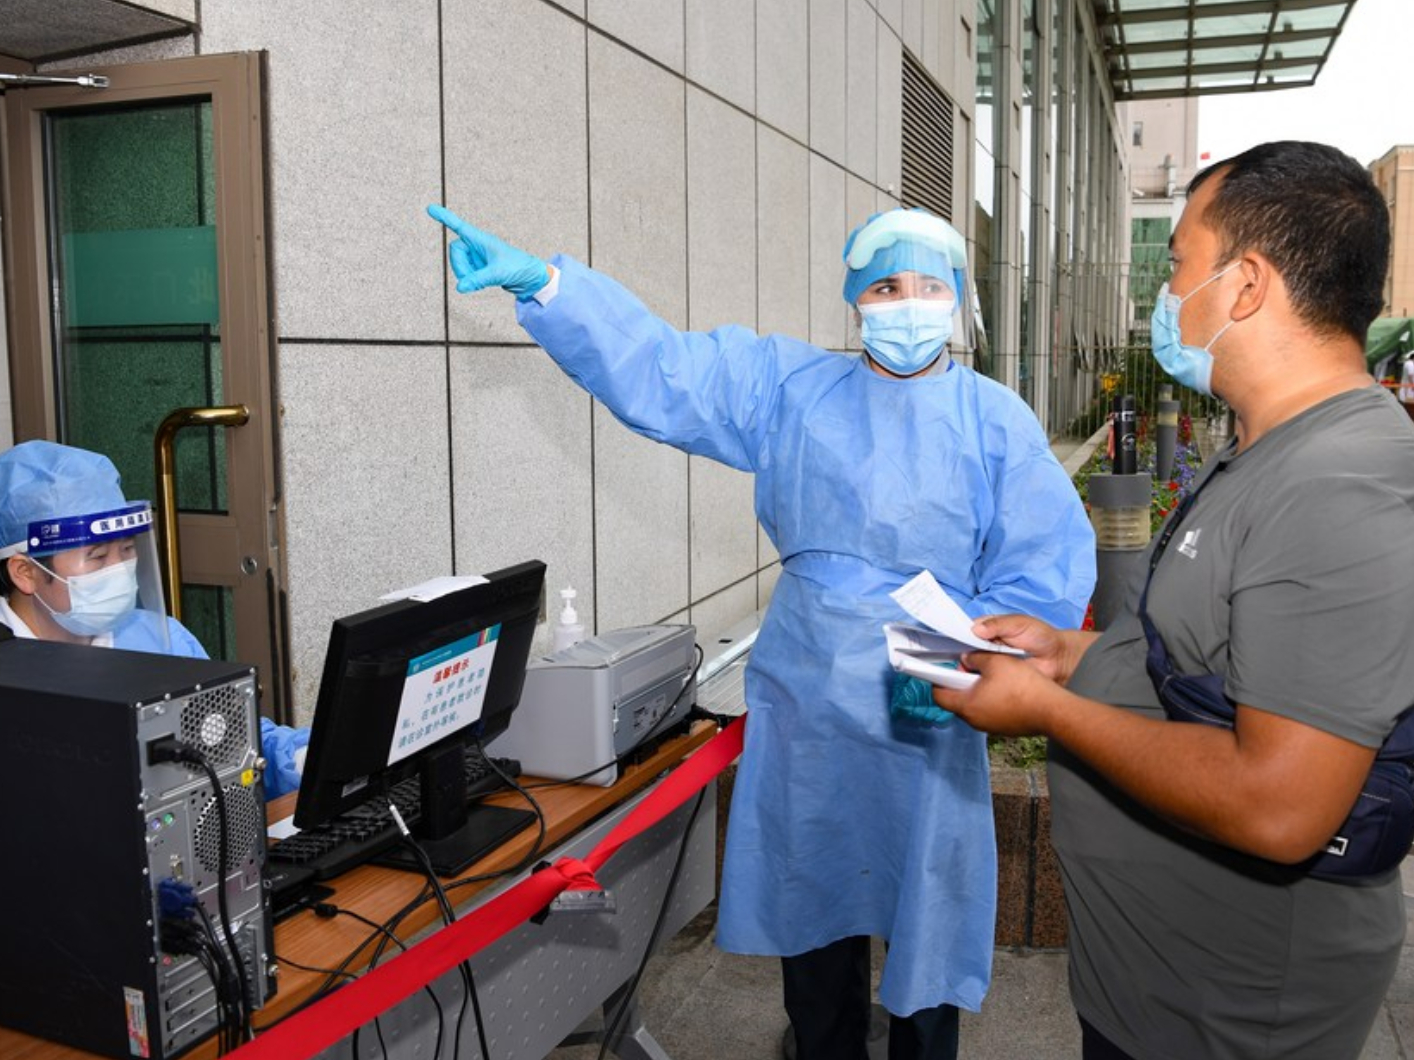 Chinese mainland reports 21 new confirmed COVID-19 cases